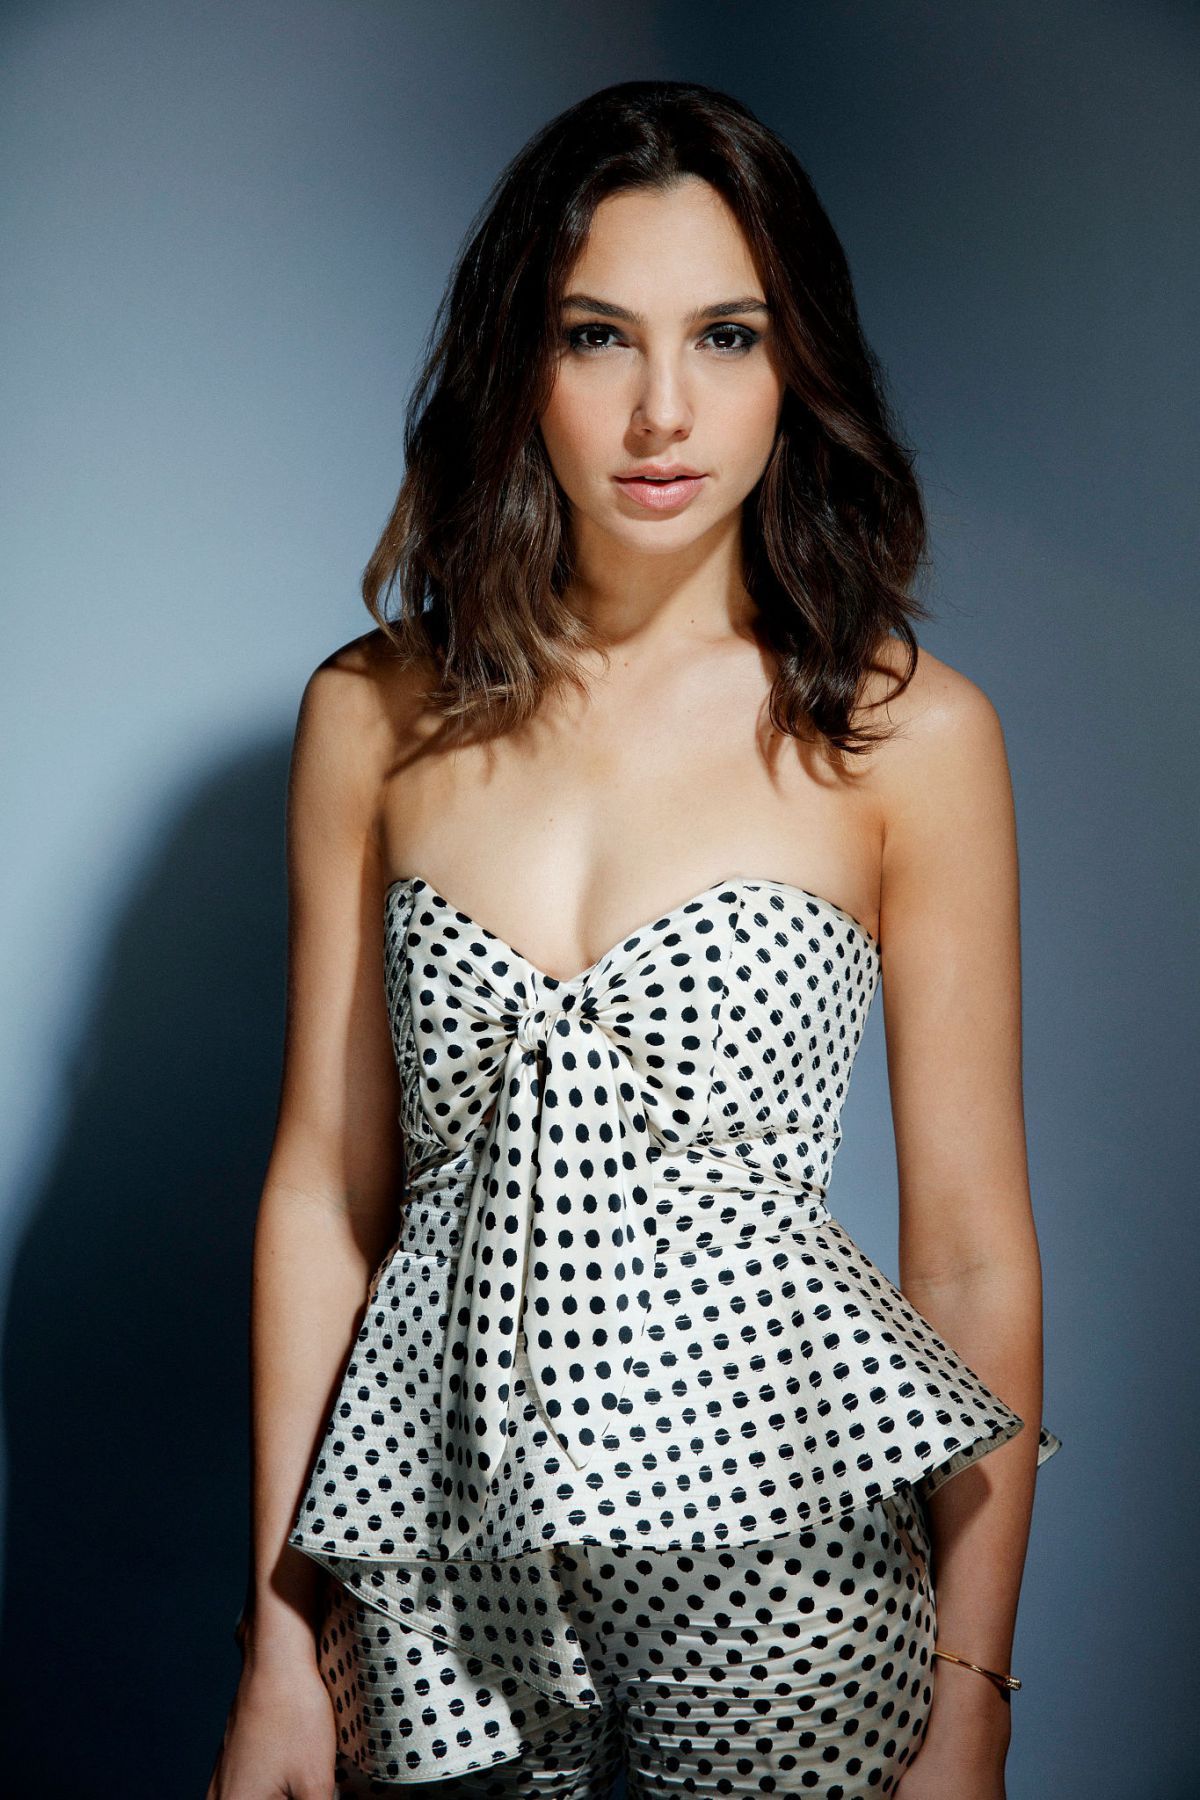 GAL GADOT for LA Times, 2016